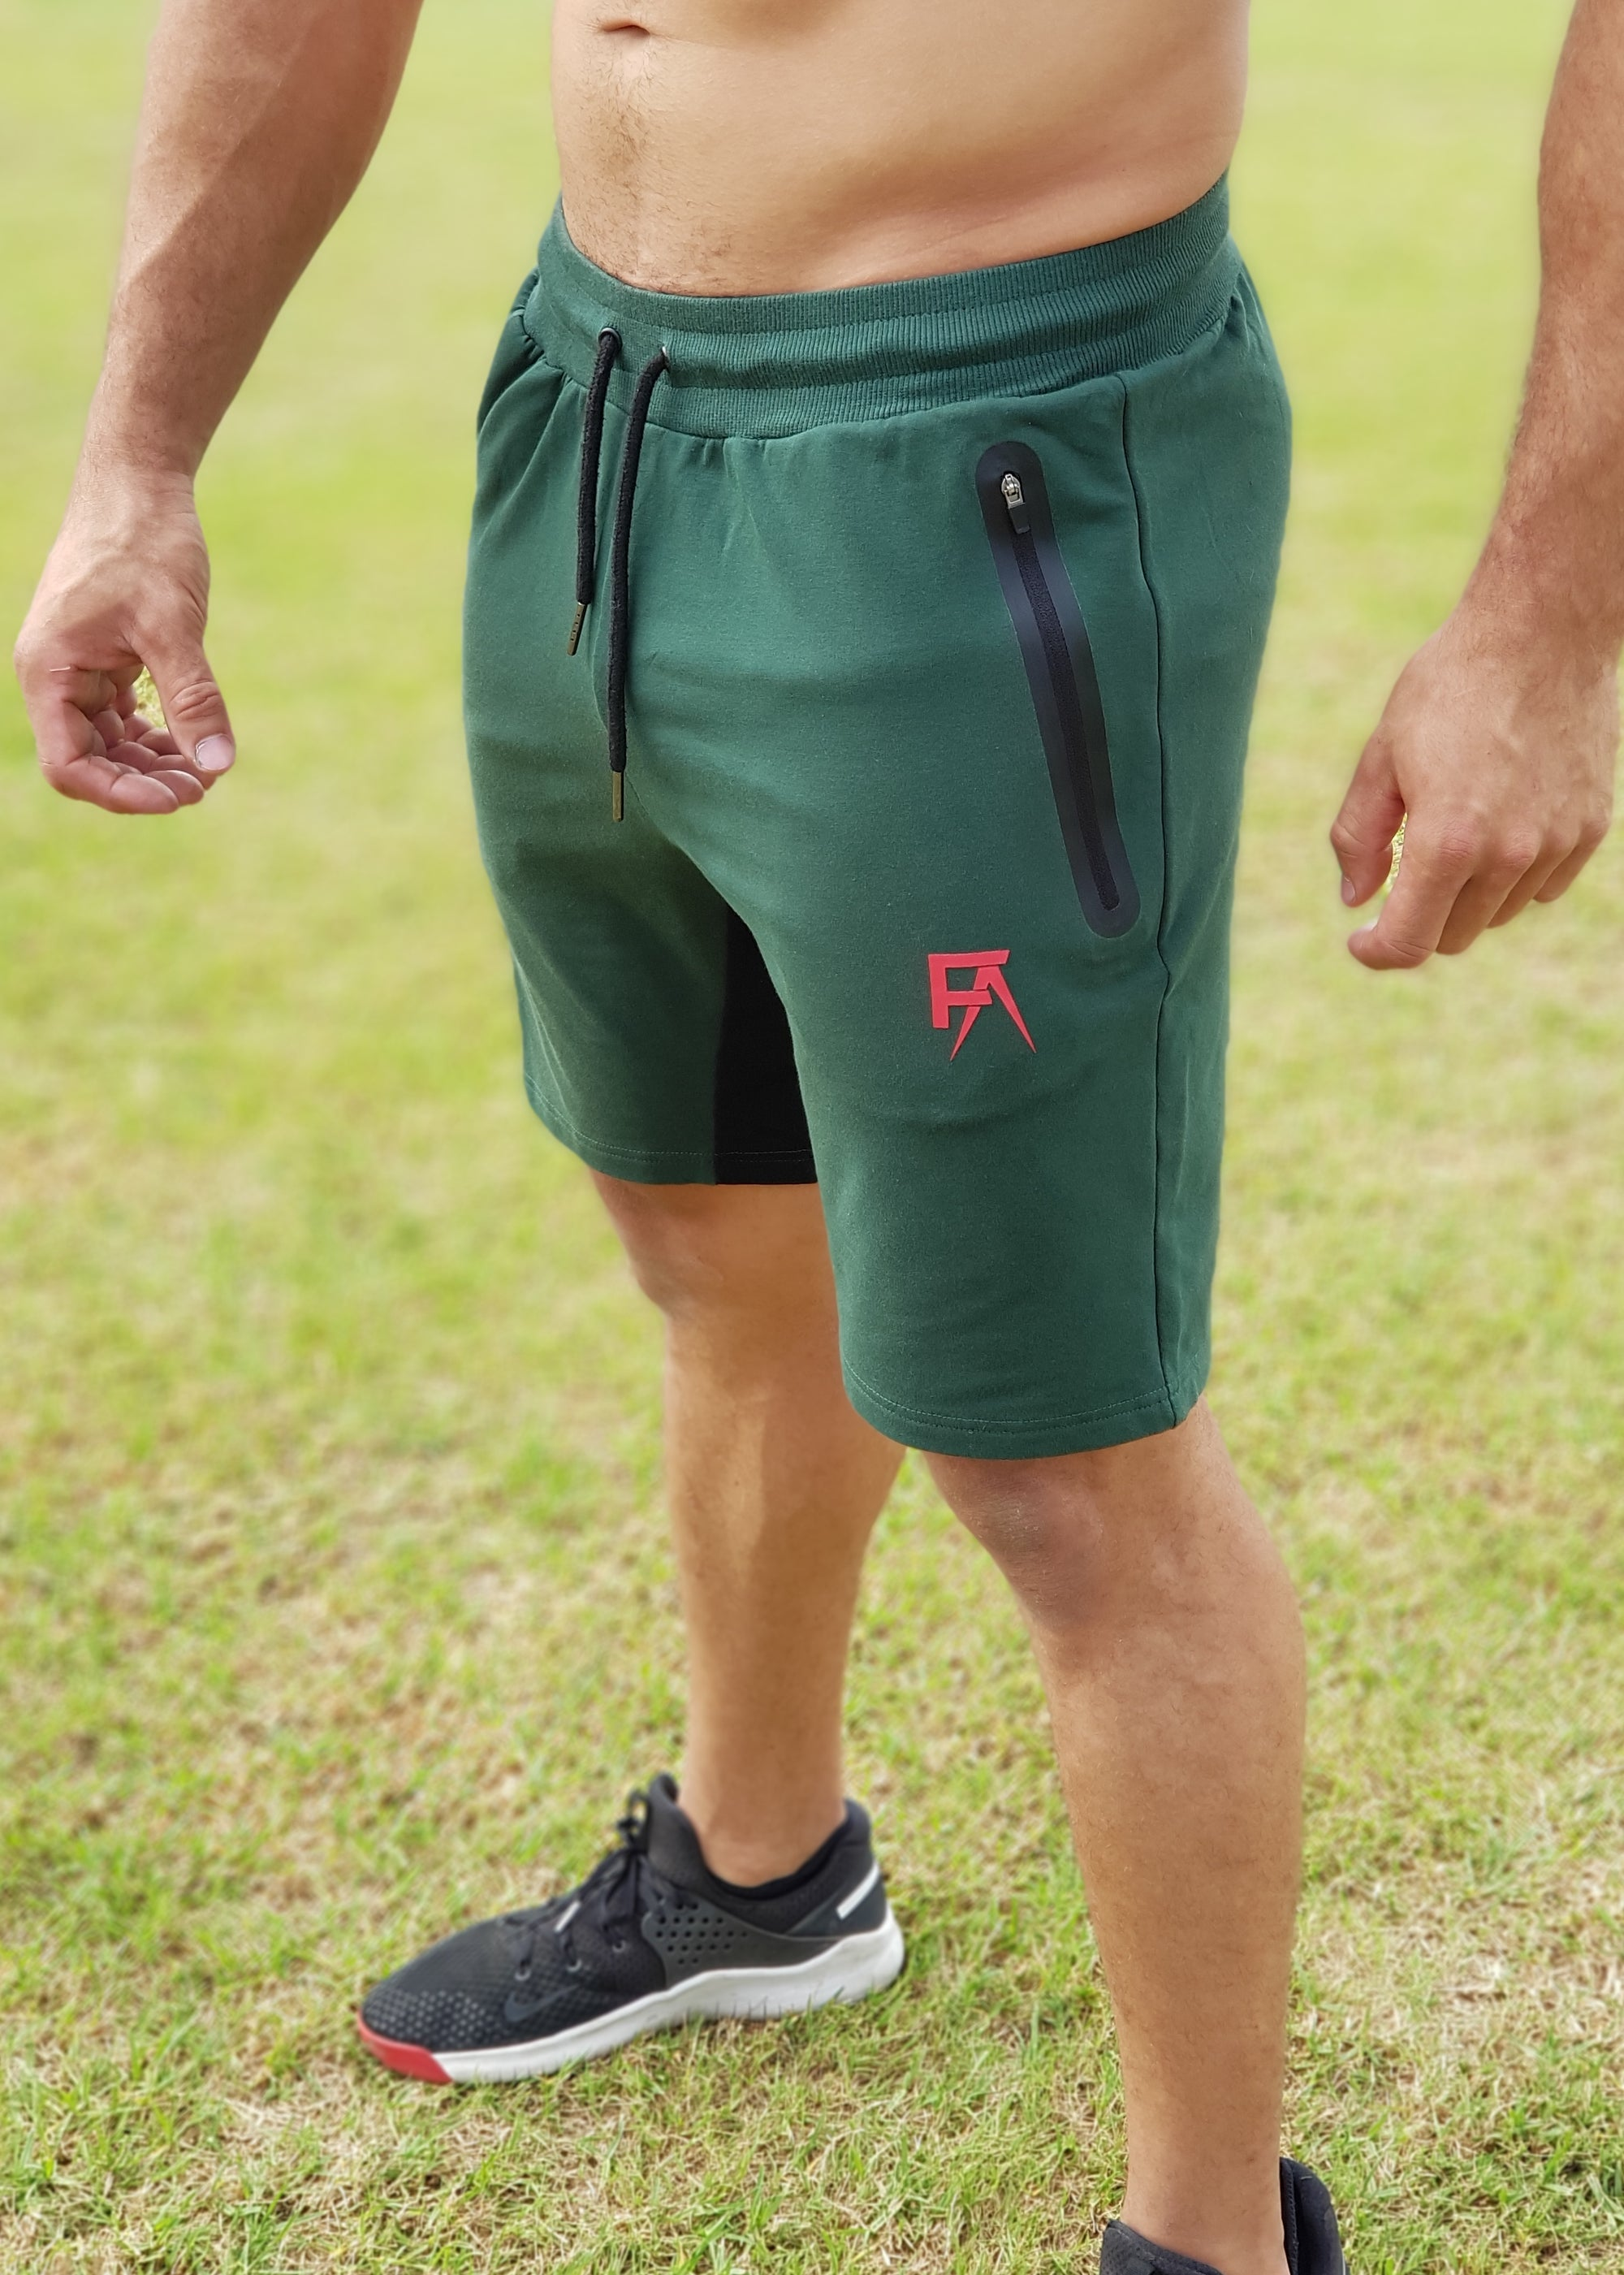 Freak Athletiq Tapered Lifestyle Shorts - Green